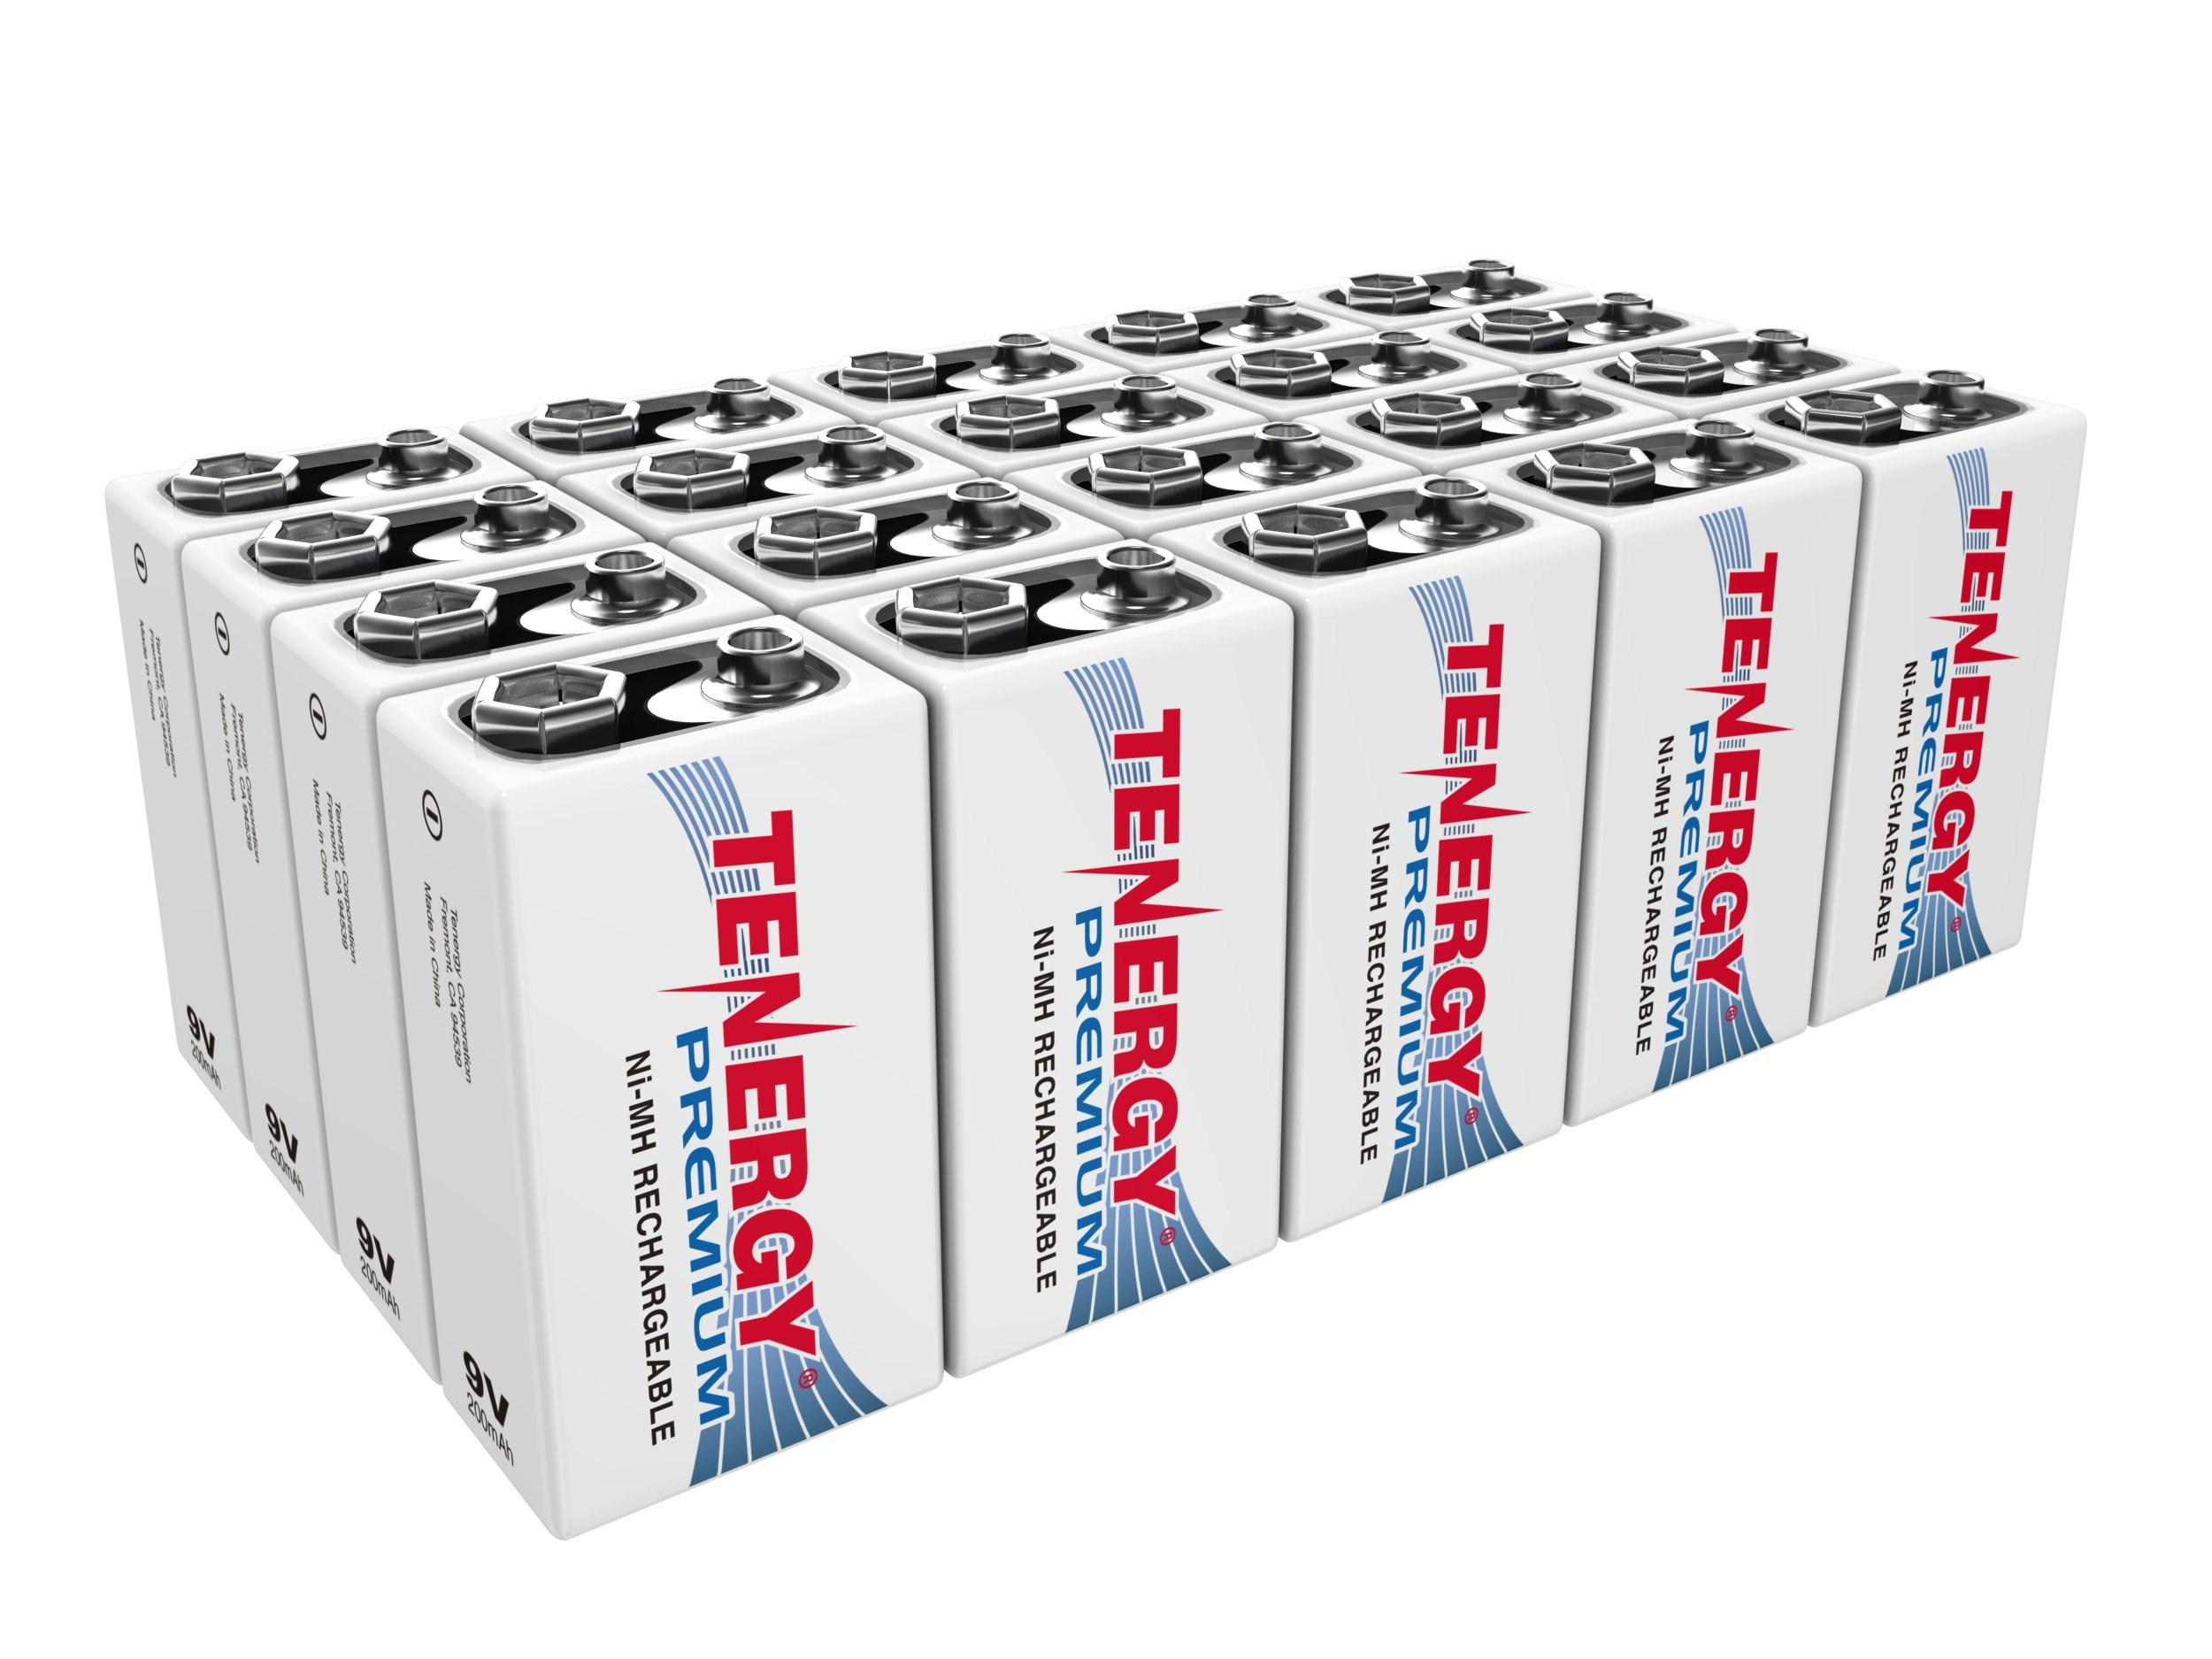 20 pcs of Tenergy Premium 9V 200mAh NiMH Rechargeable Batteries